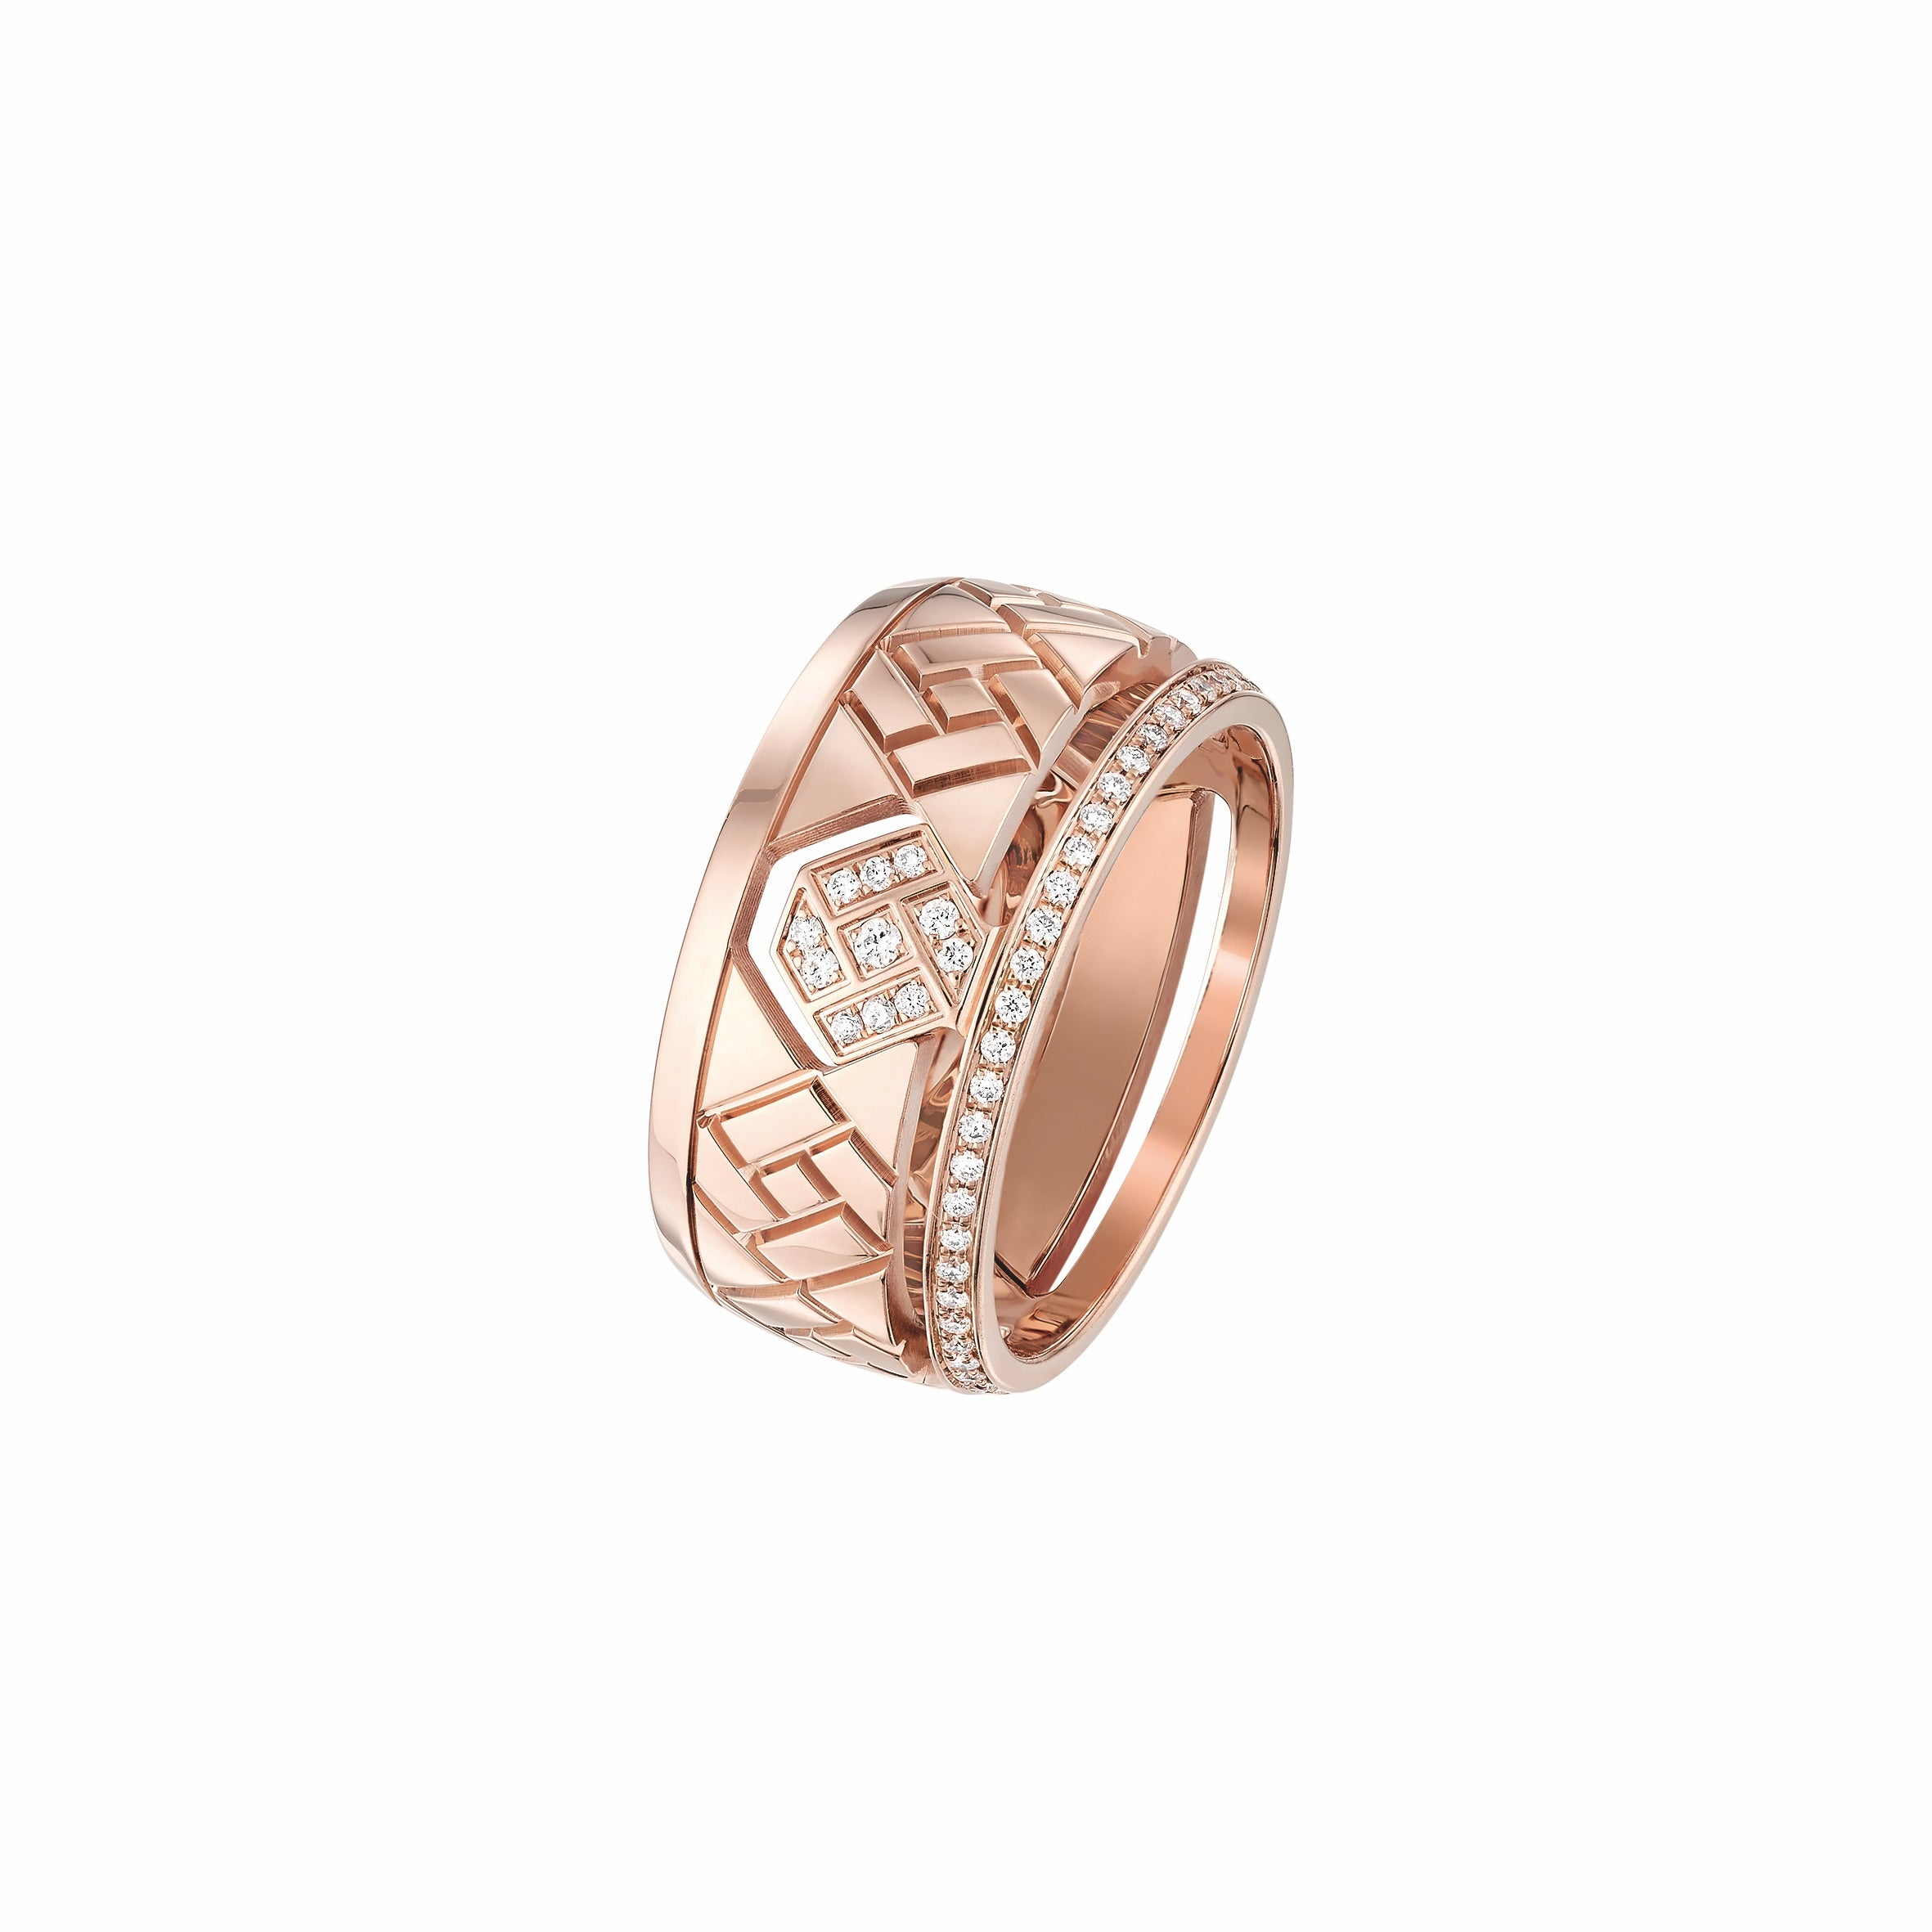 Rose Gold - The Grafik Small Ring with Diamonds